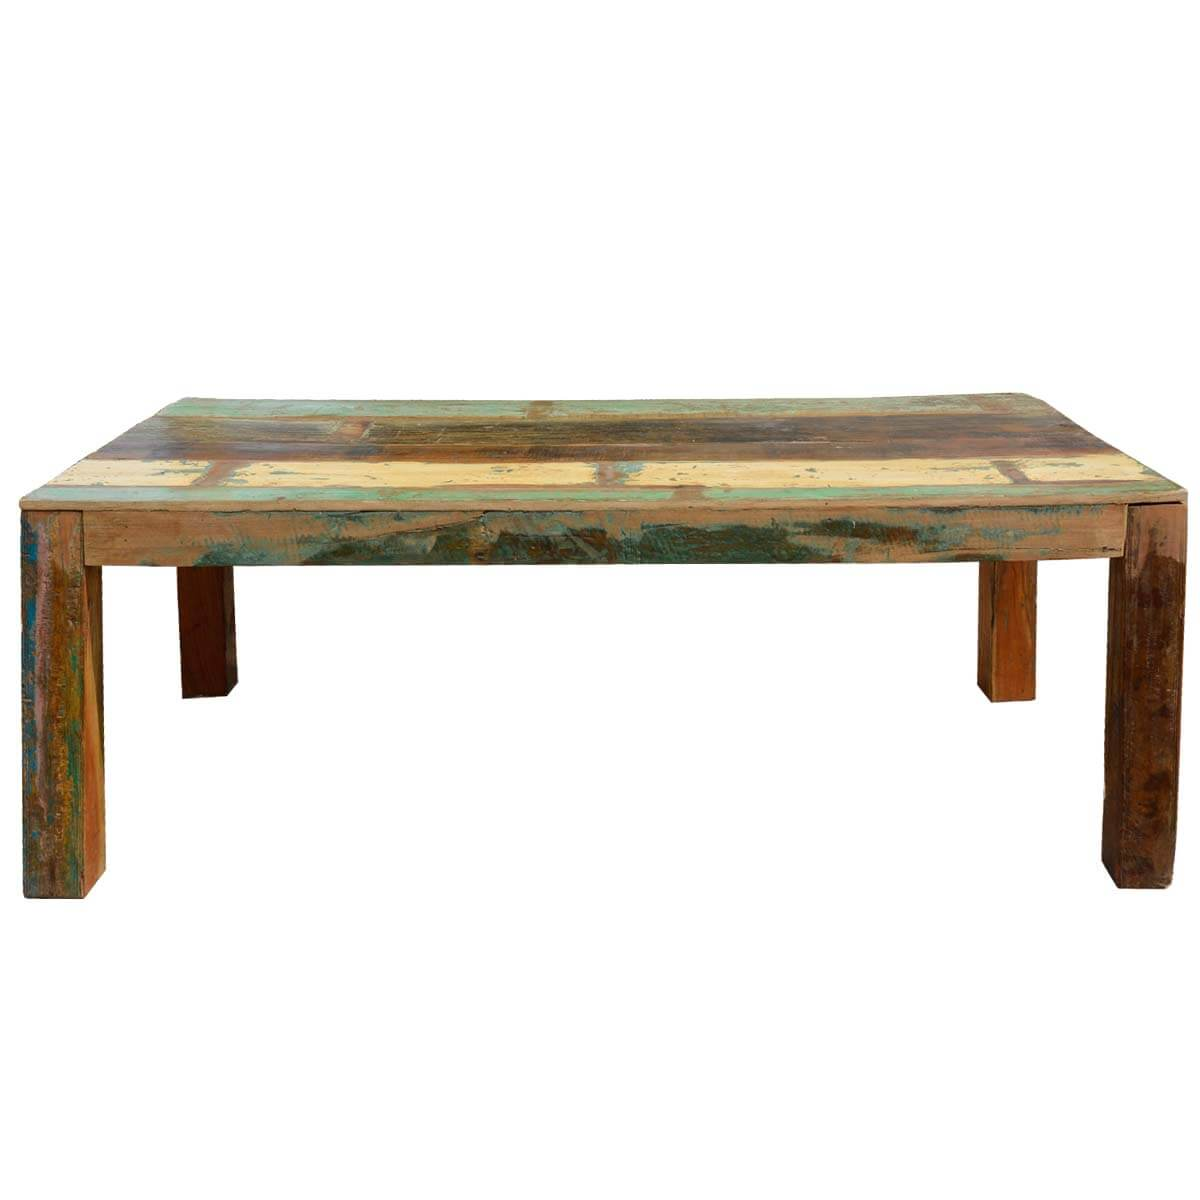 Appalachian rustic large reclaimed wood dining table for Biggest dining table